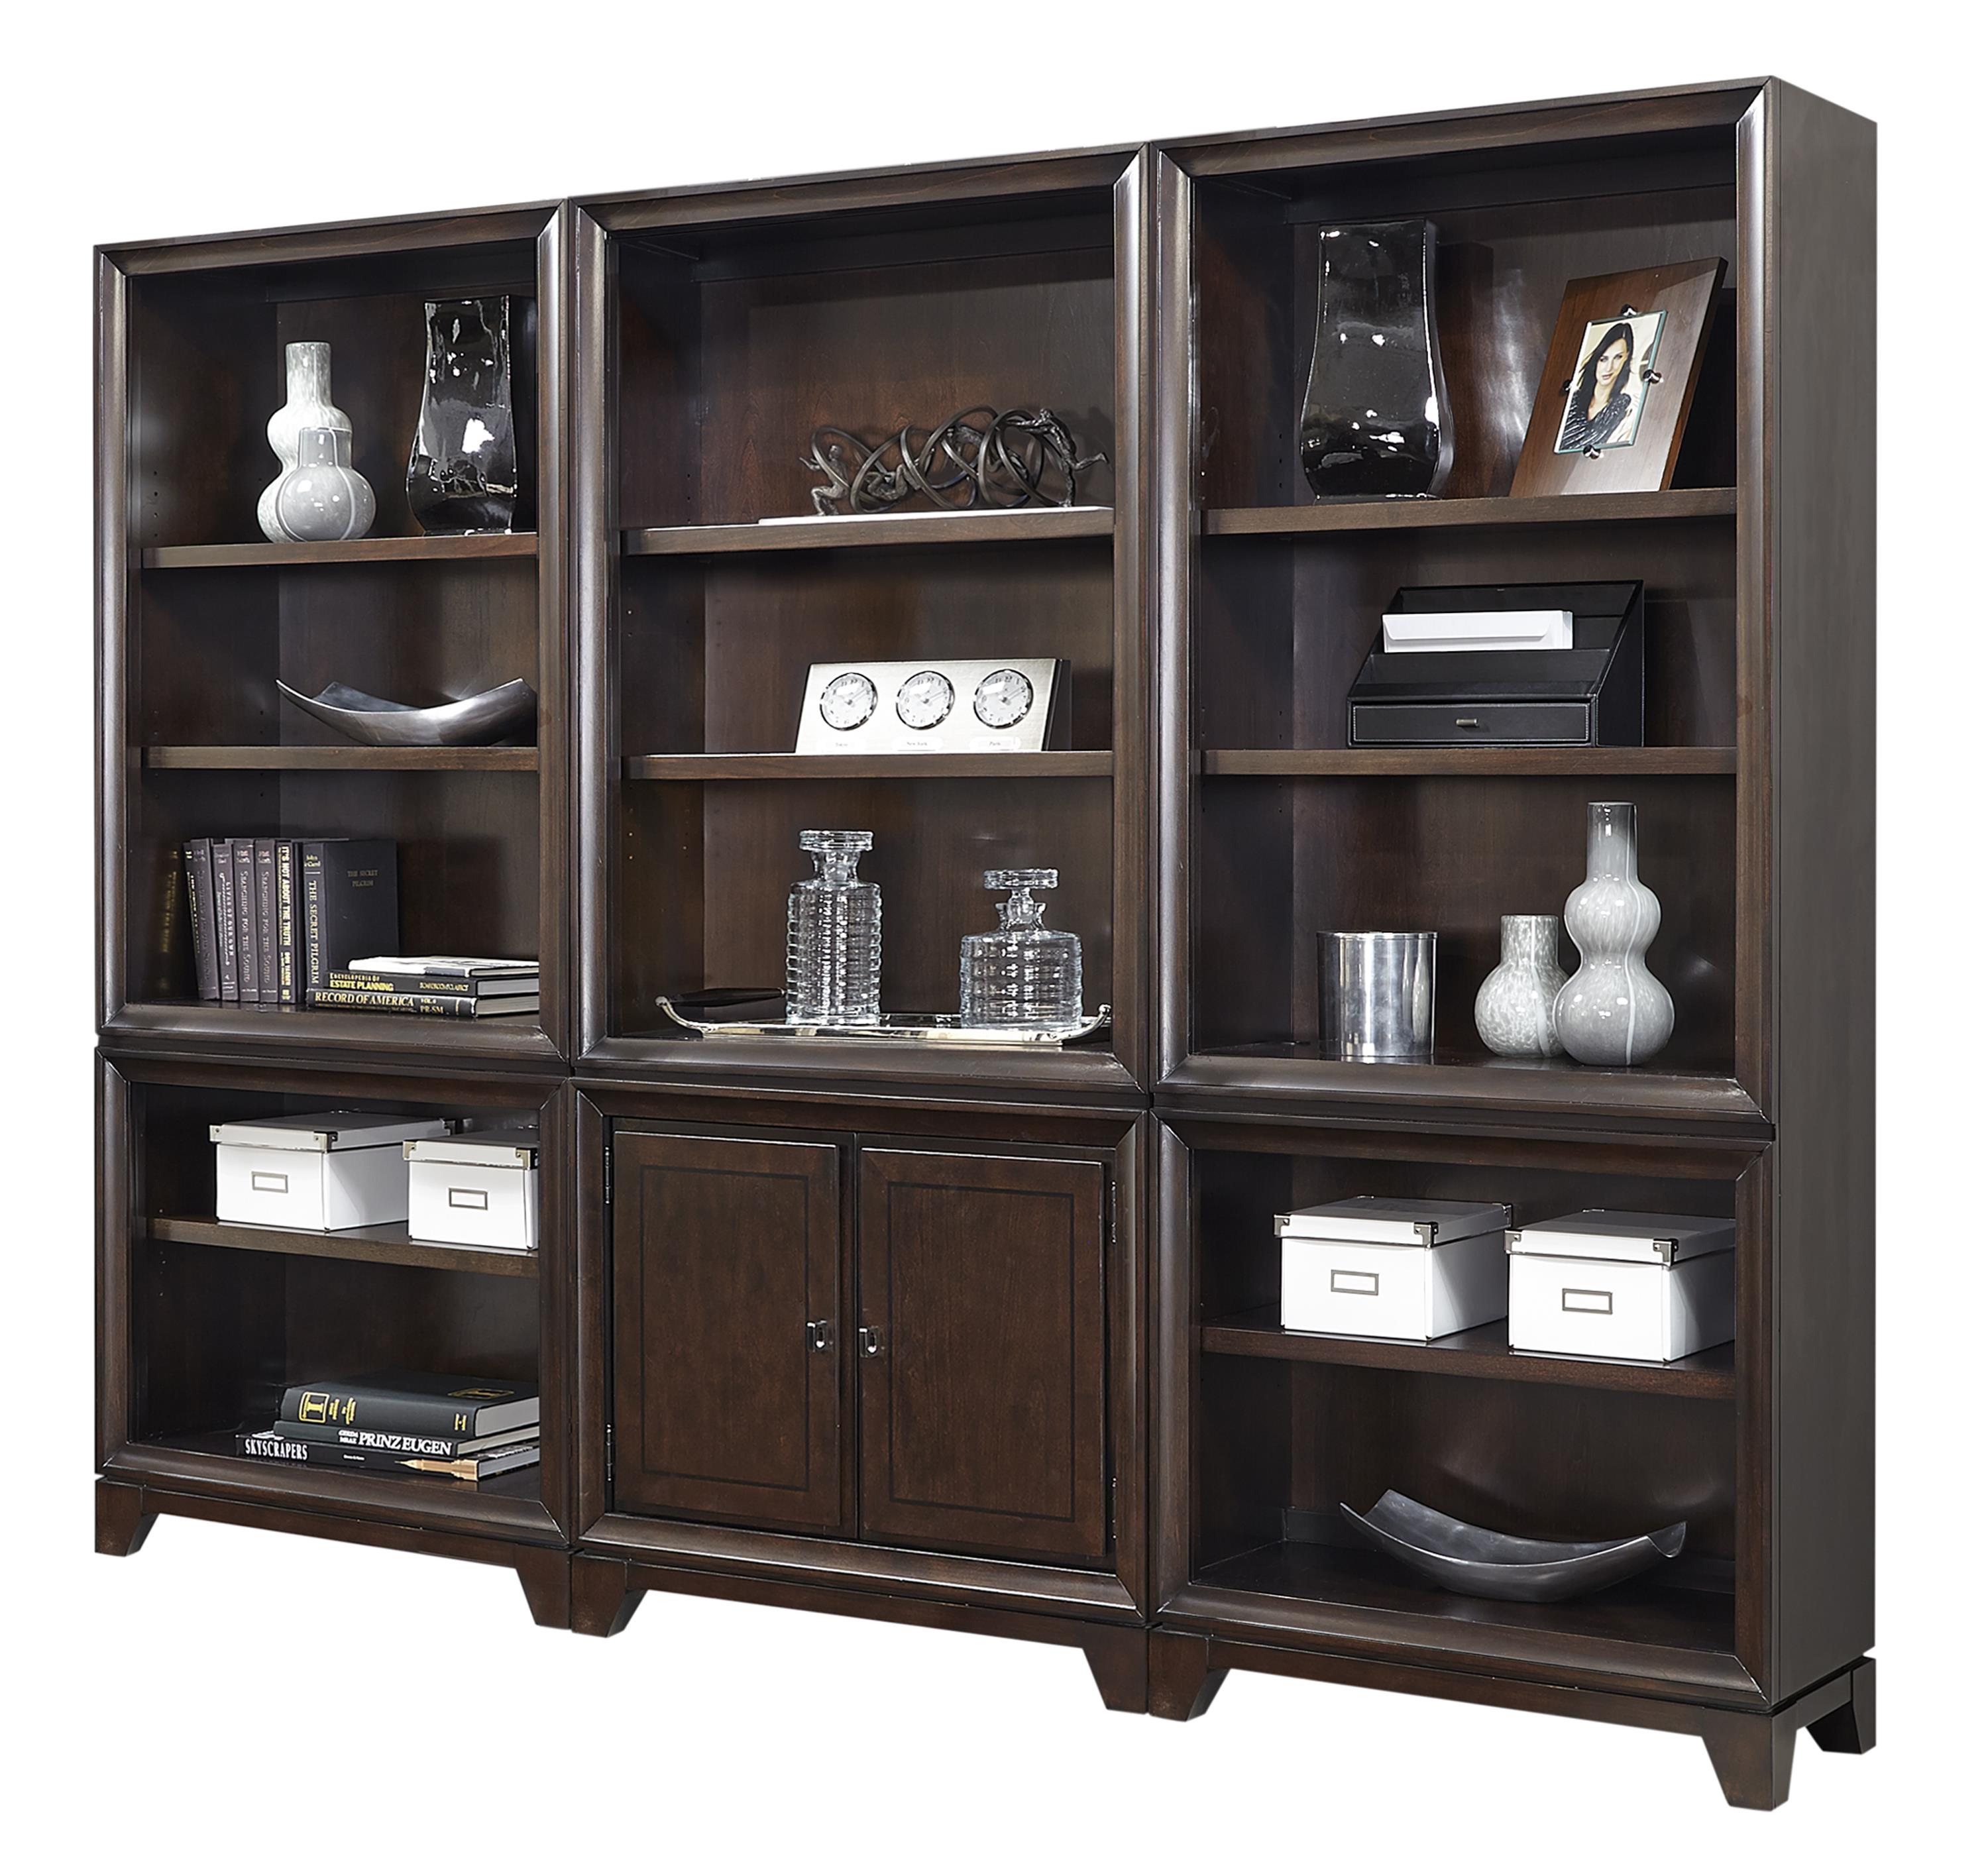 Aspenhome Viewscape Bookcase with Nine Adjustable Shelves - Item Number: I73-332+2x333